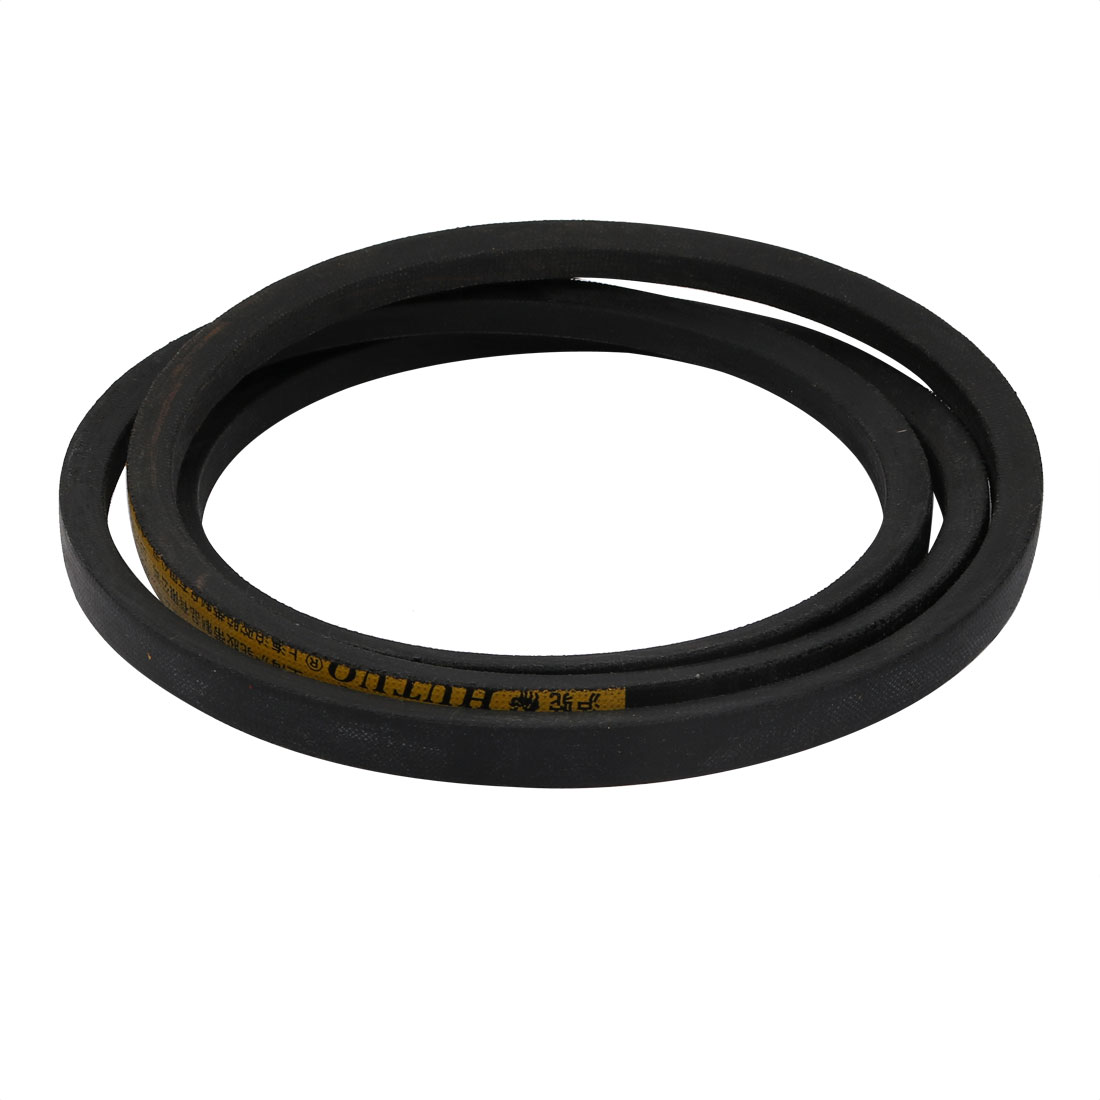 A1448 13mm Width 8mm Thickness Rubber High Strength Transmission Drive V-Belt